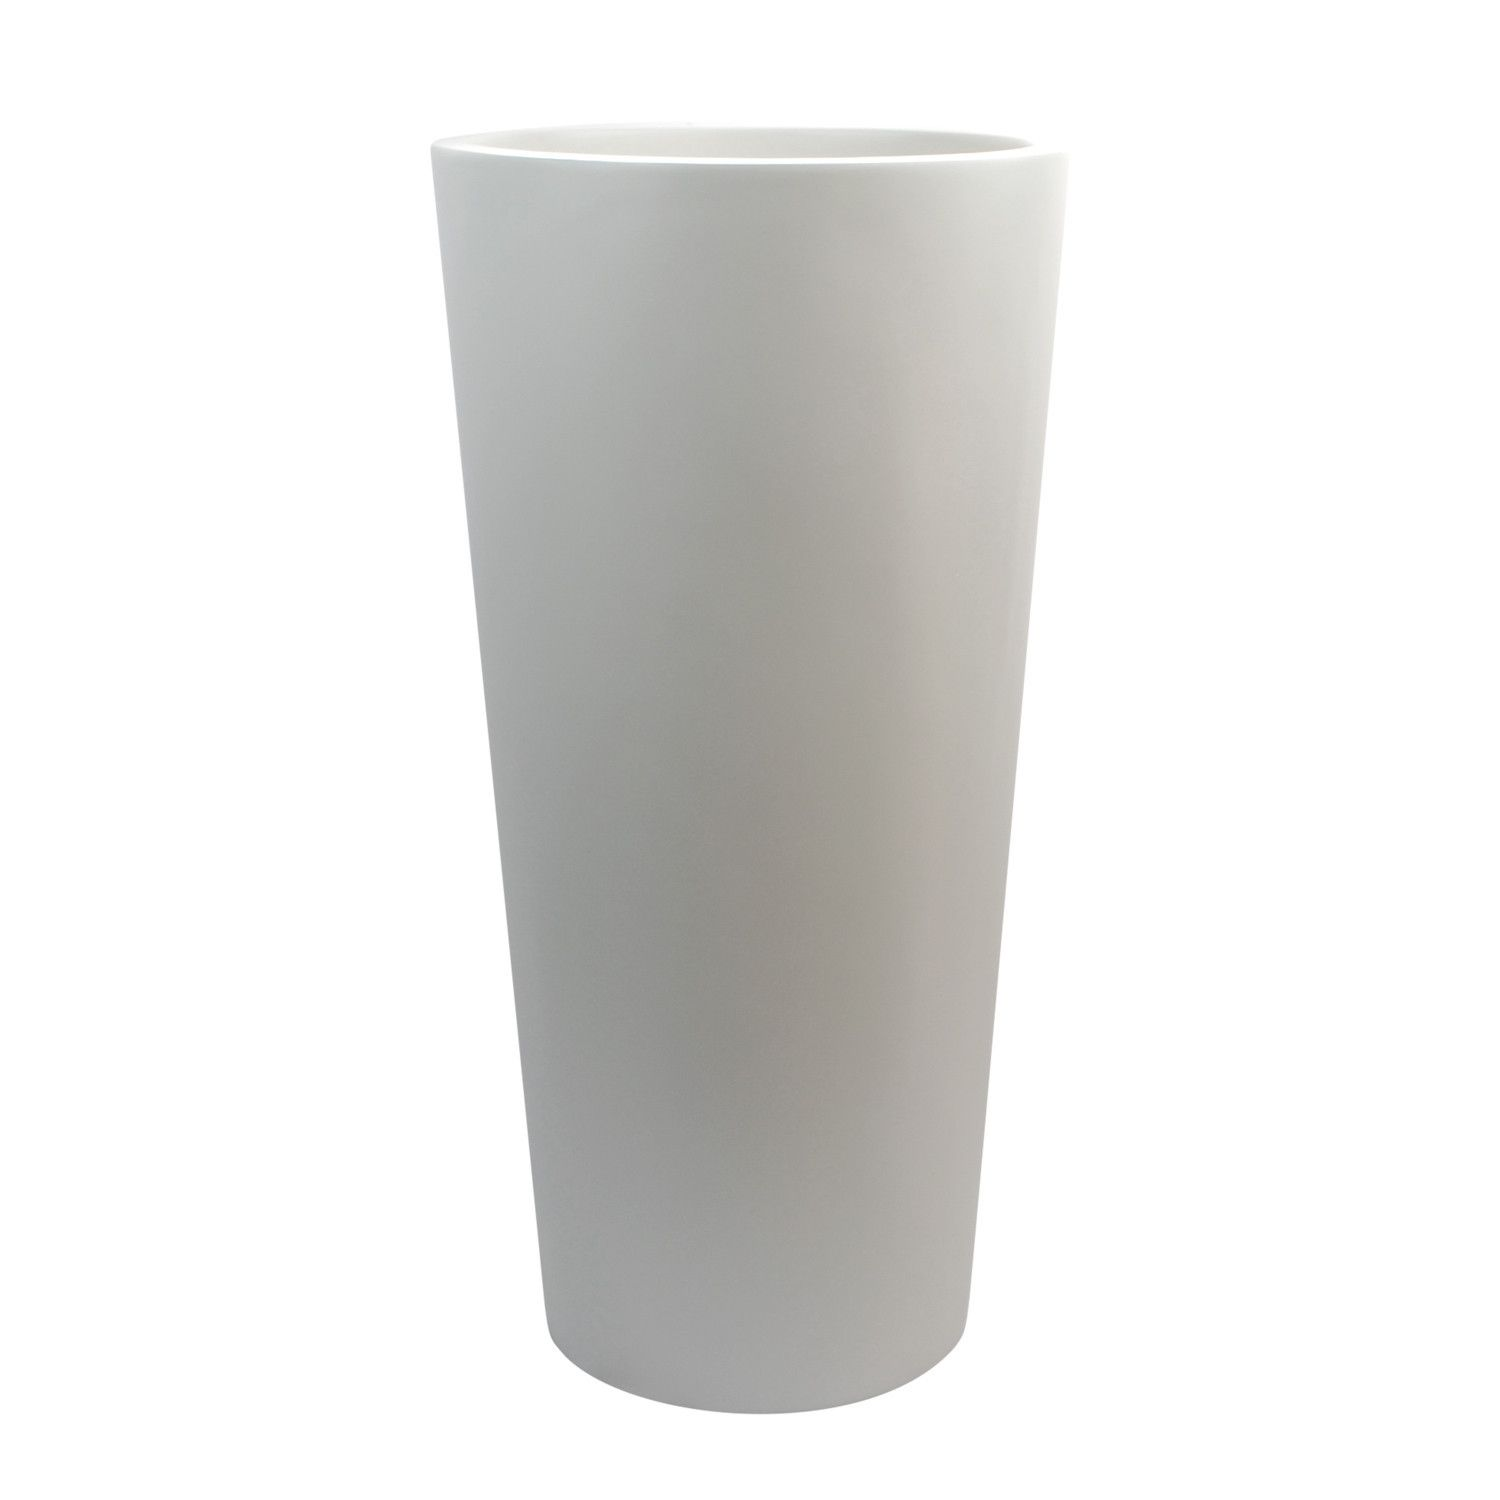 Sonoma Tall Cylinder Planter   White